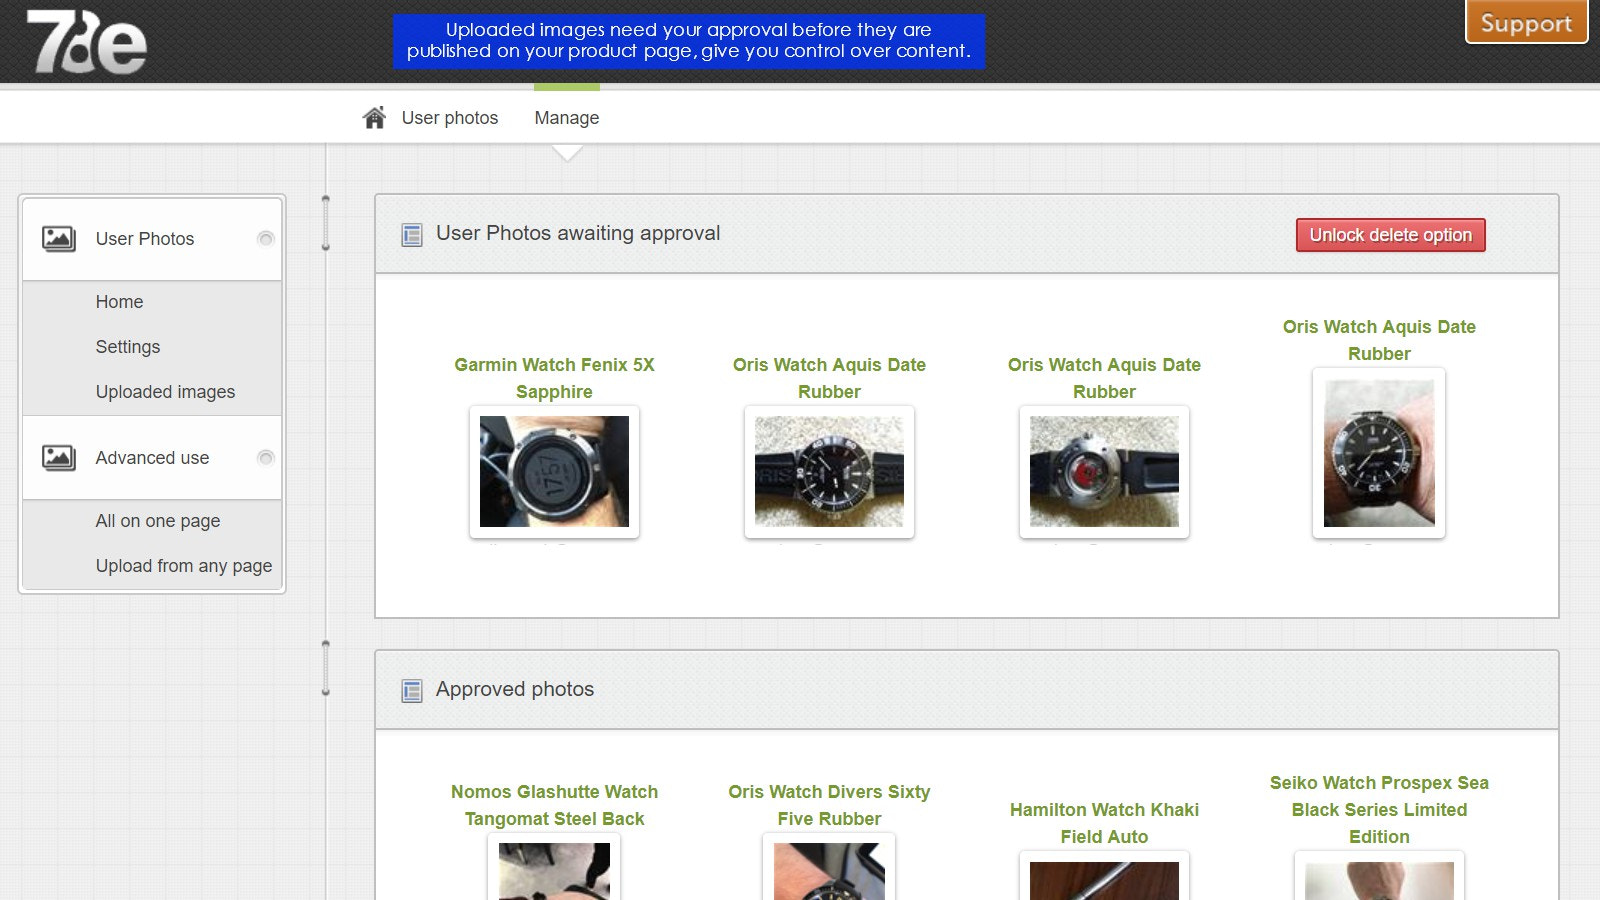 Uploaded images require approval before they are shown.